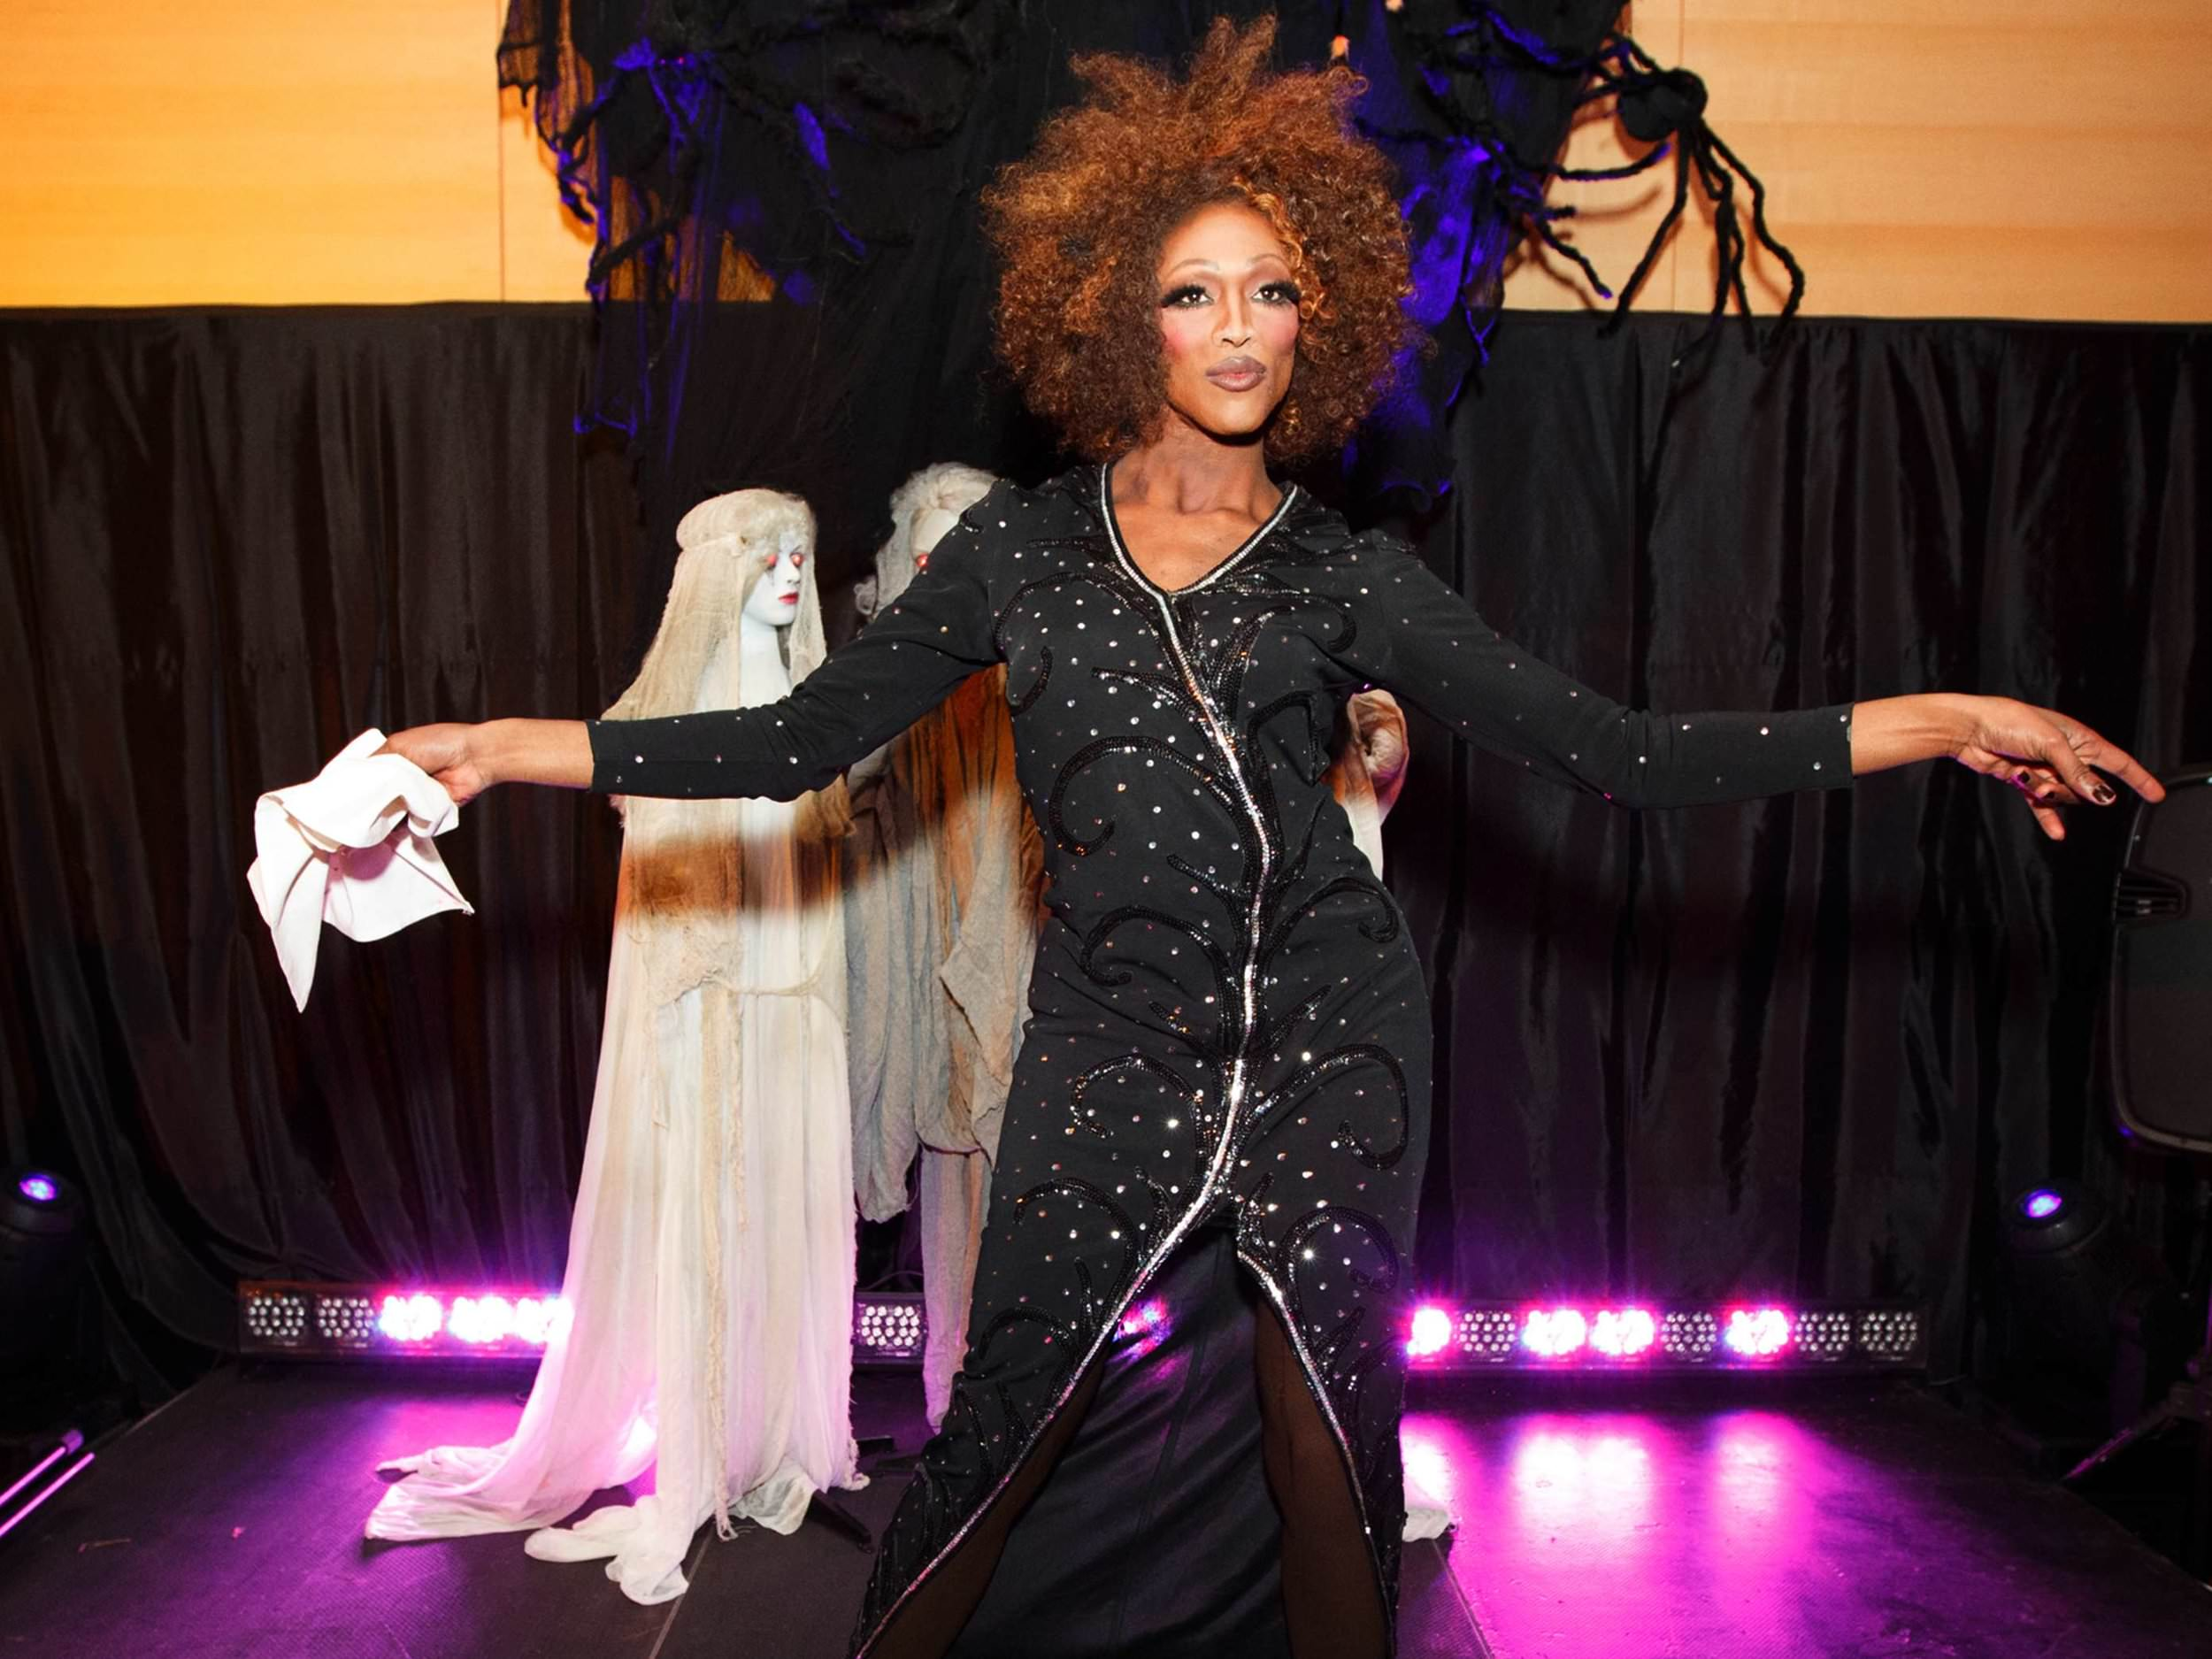 whitney-houston-drag-impersonator-at-hollywood-party-in-boston-ma-with-harrington-events-michael-blanchard-photography.jpg.jpg